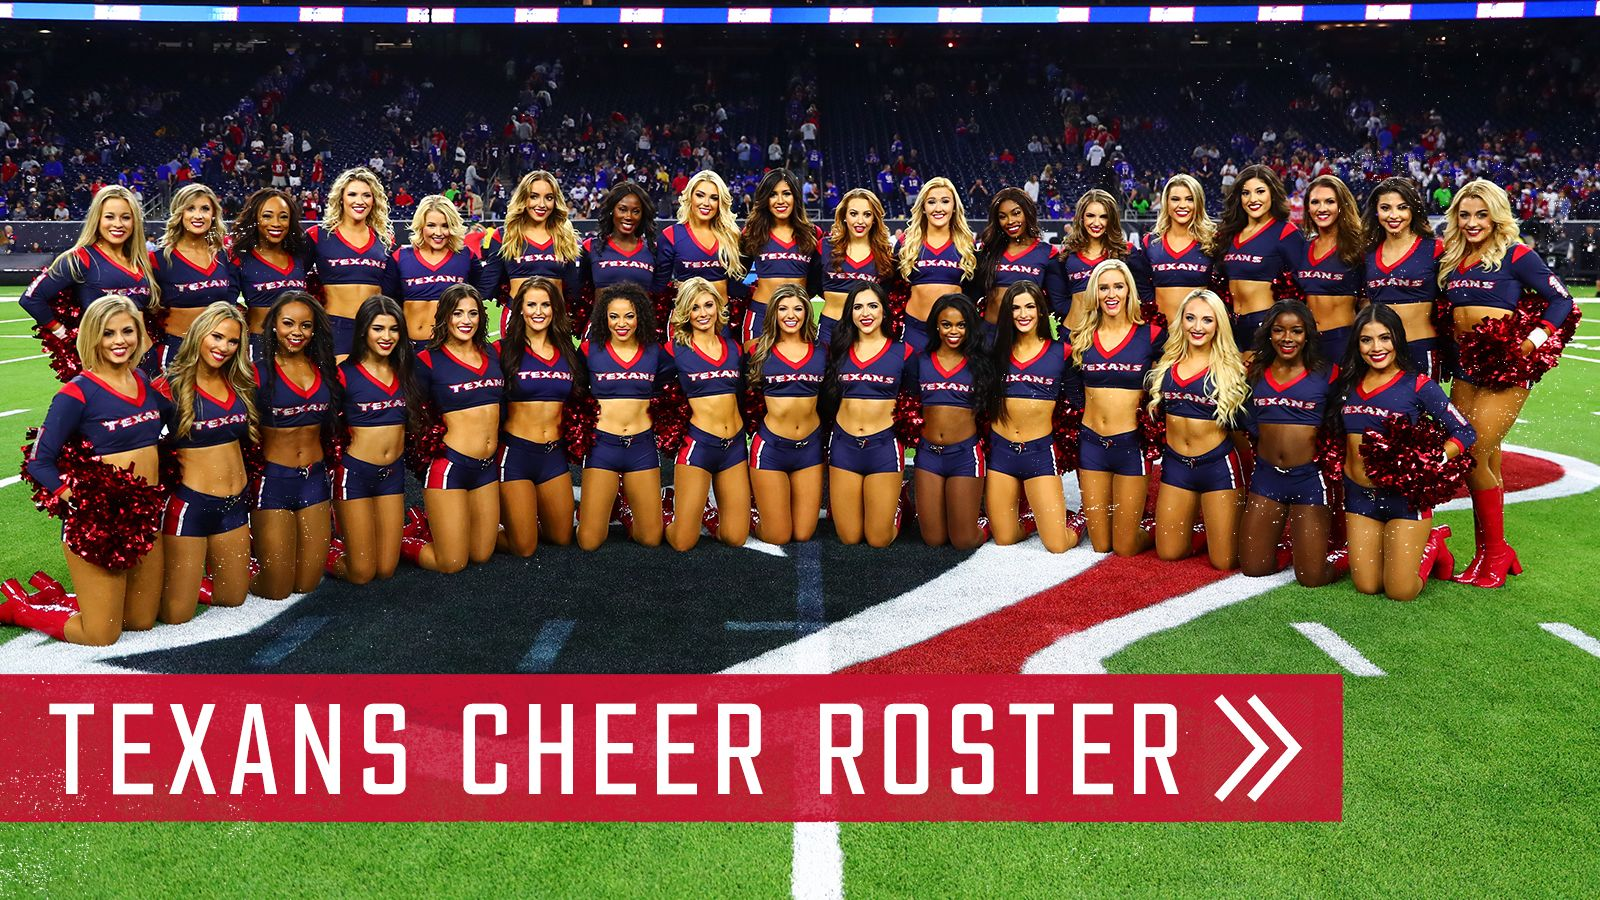 Texans Cheer Roster